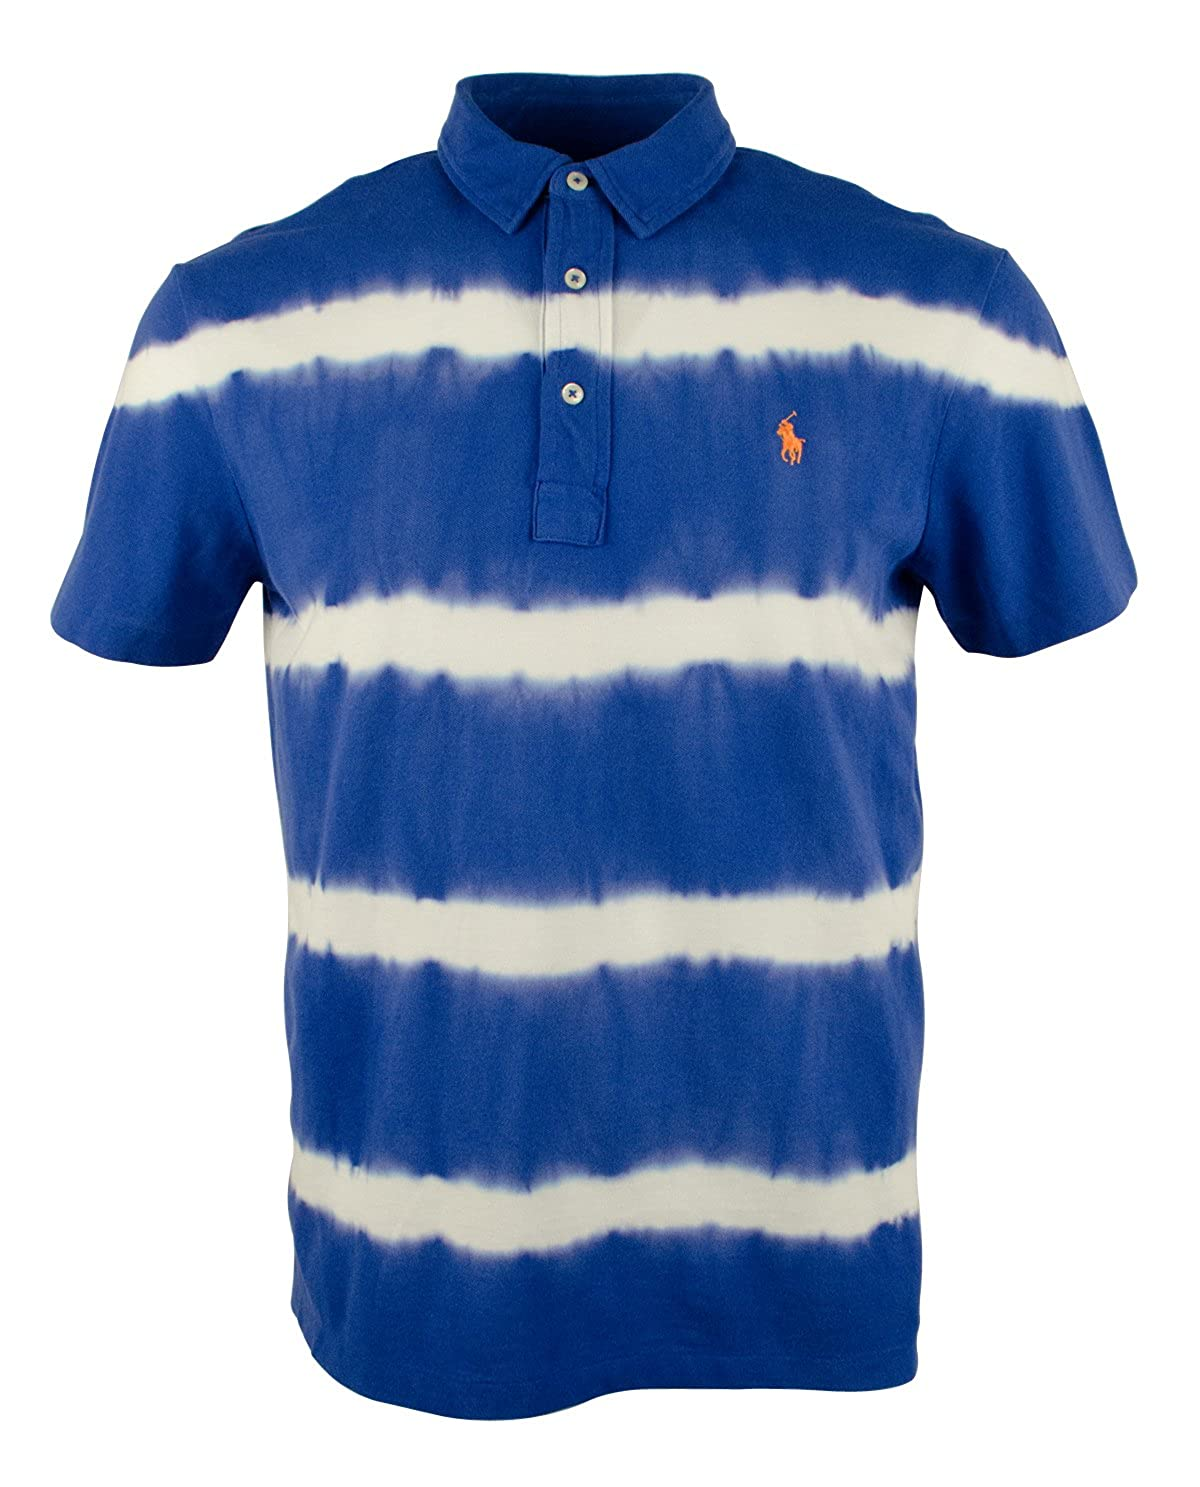 a5aef9377b Ralph Lauren Polo Men's Regular Fit Tie-Dyed Featherweight Polo ...